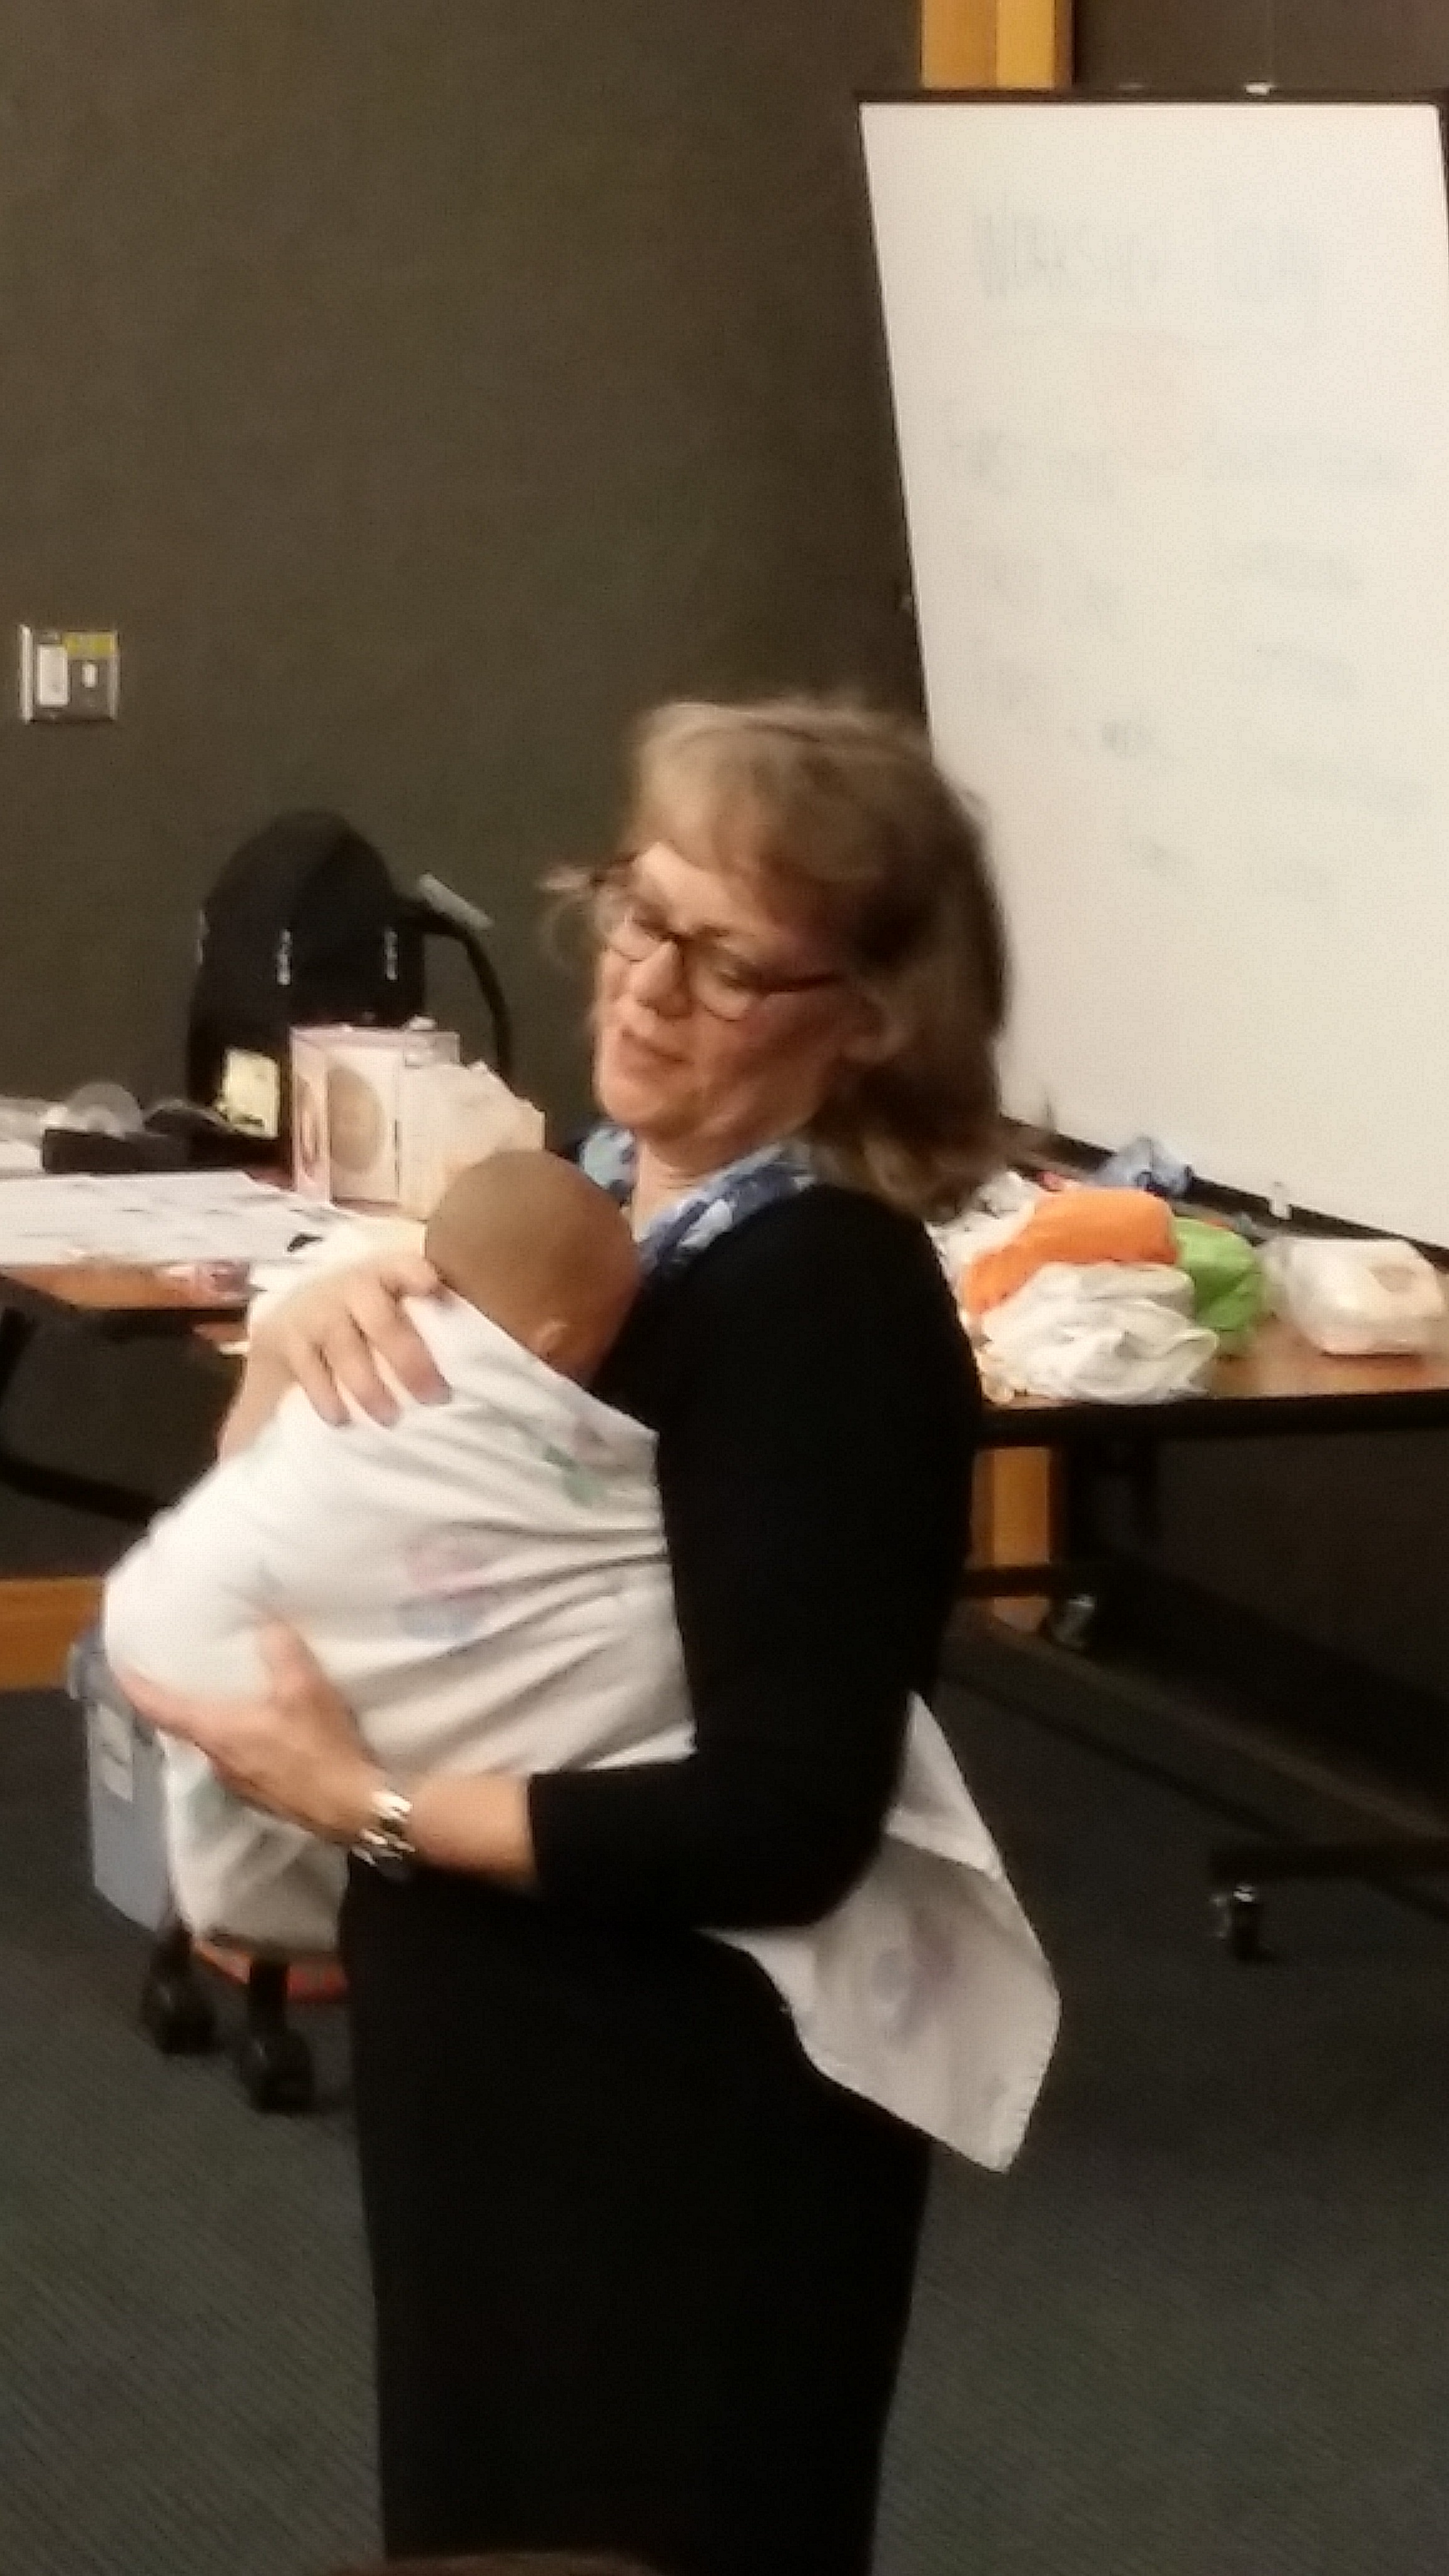 Alisa and I teach this technique in our breastfeeding and baby care seminar class. You can see how the blanket is really tucked under the arms and under baby's bum.